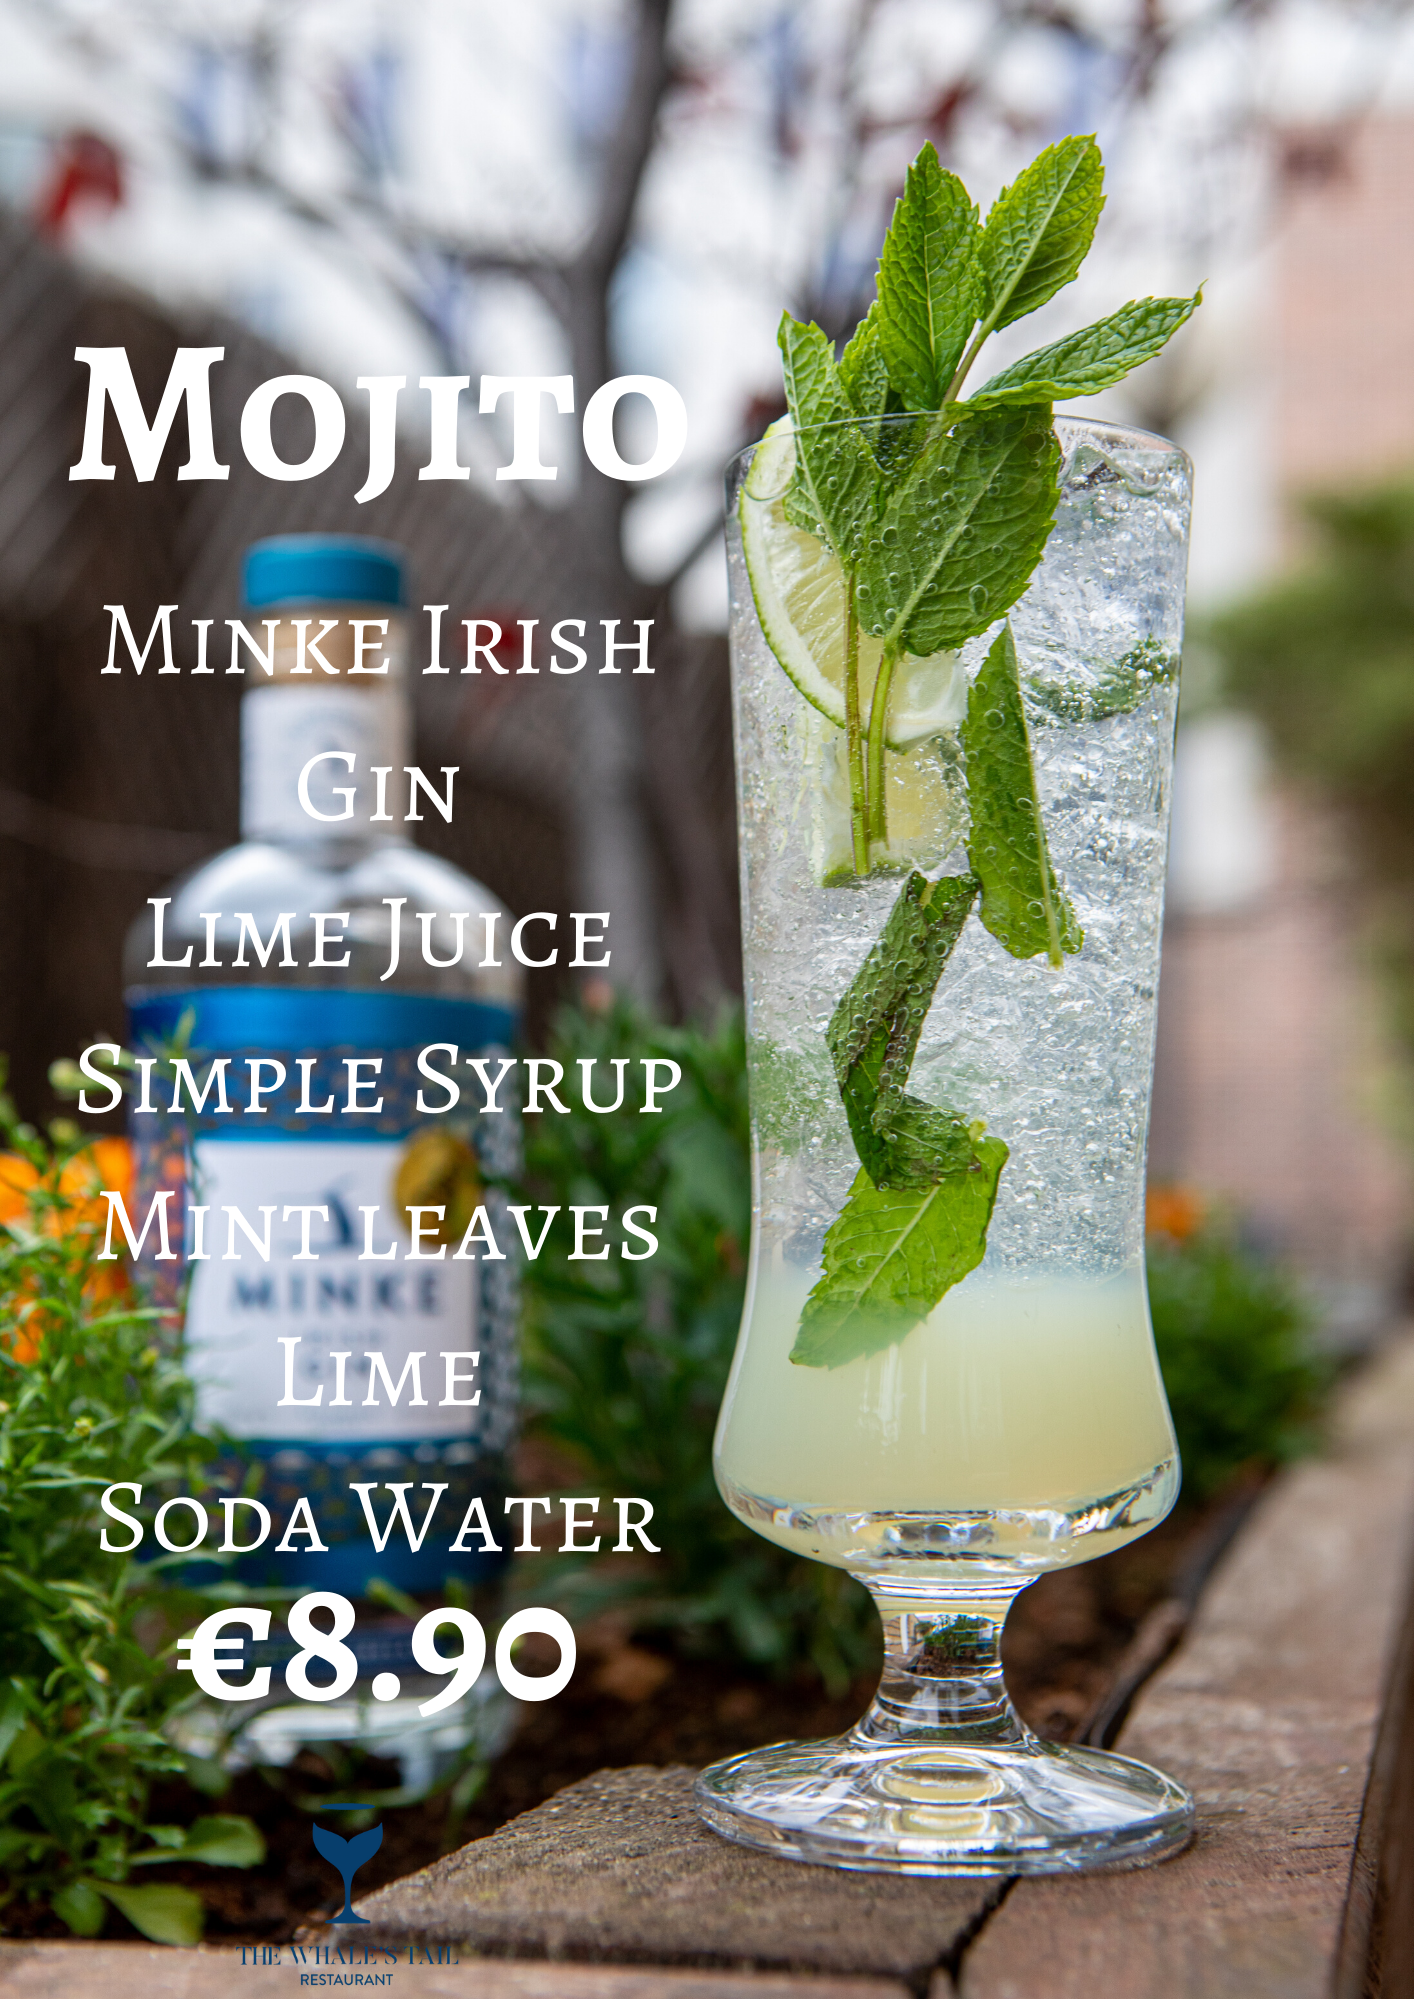 minke-irish-gin-lime-juice-simple-syrup-mint-leaves-lime-soda-water.png